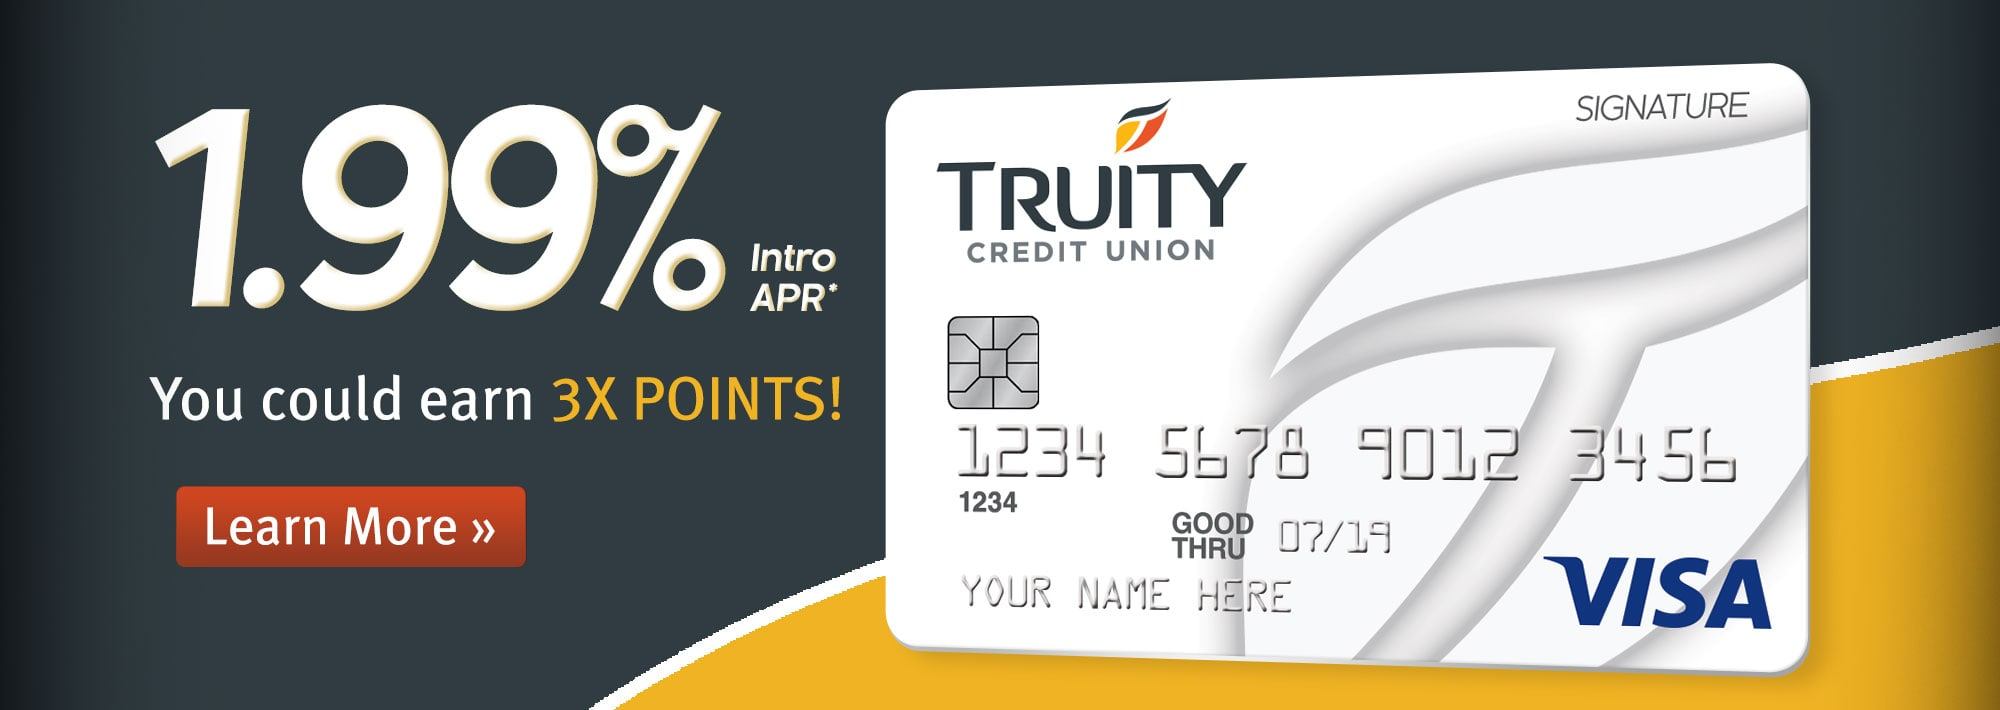 1.99% Intro APR*. You could earn 3X Points! Learn more.